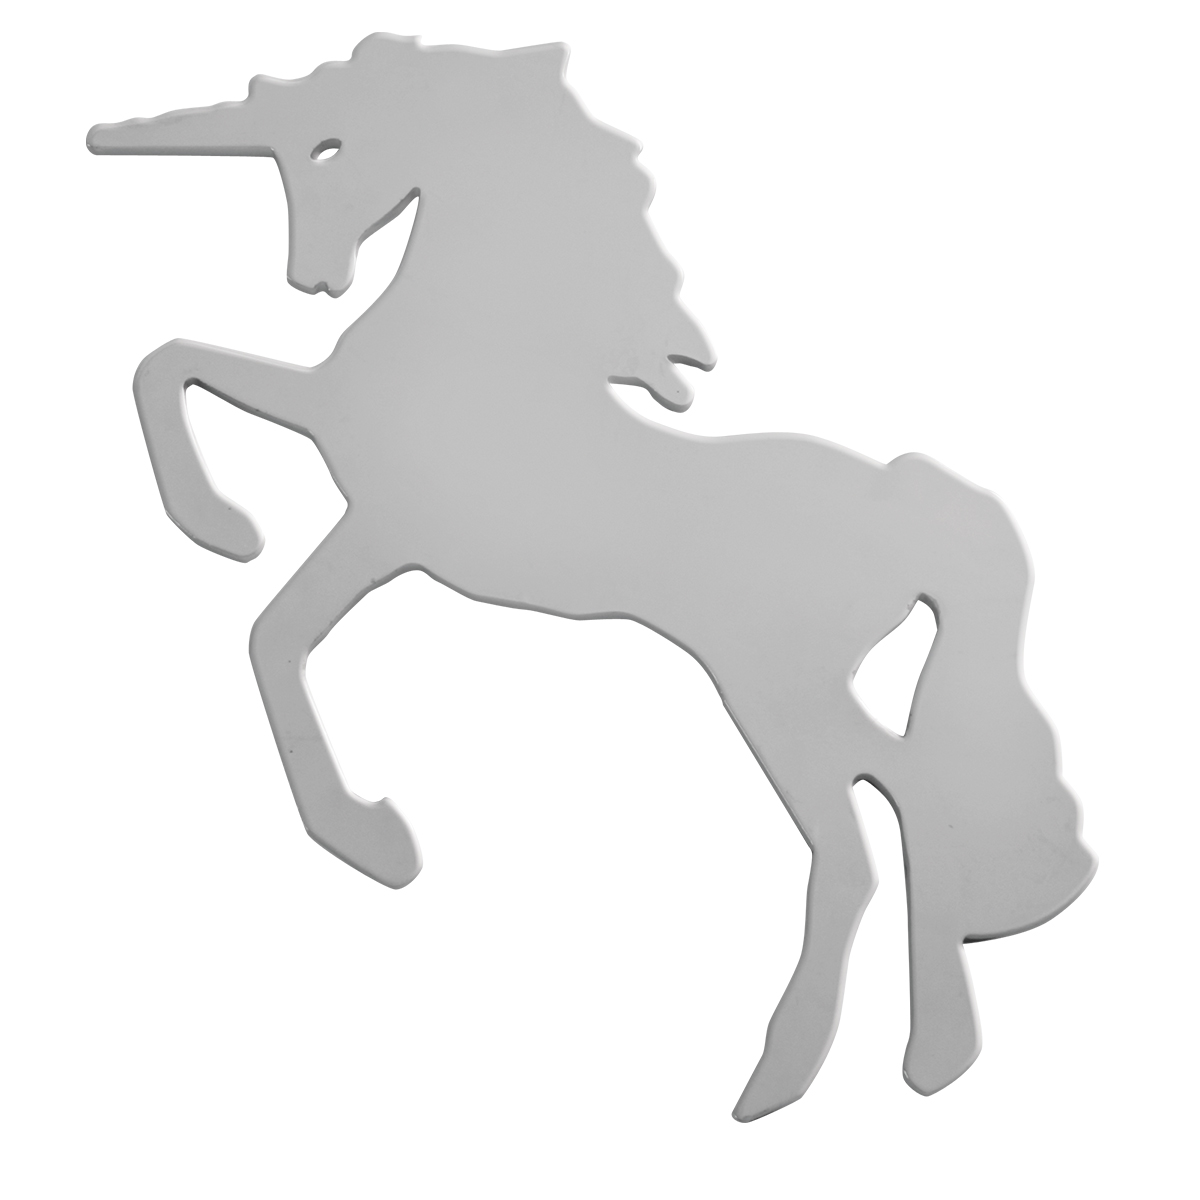 #94046 Small Unicorn Cut Out - Facing Left